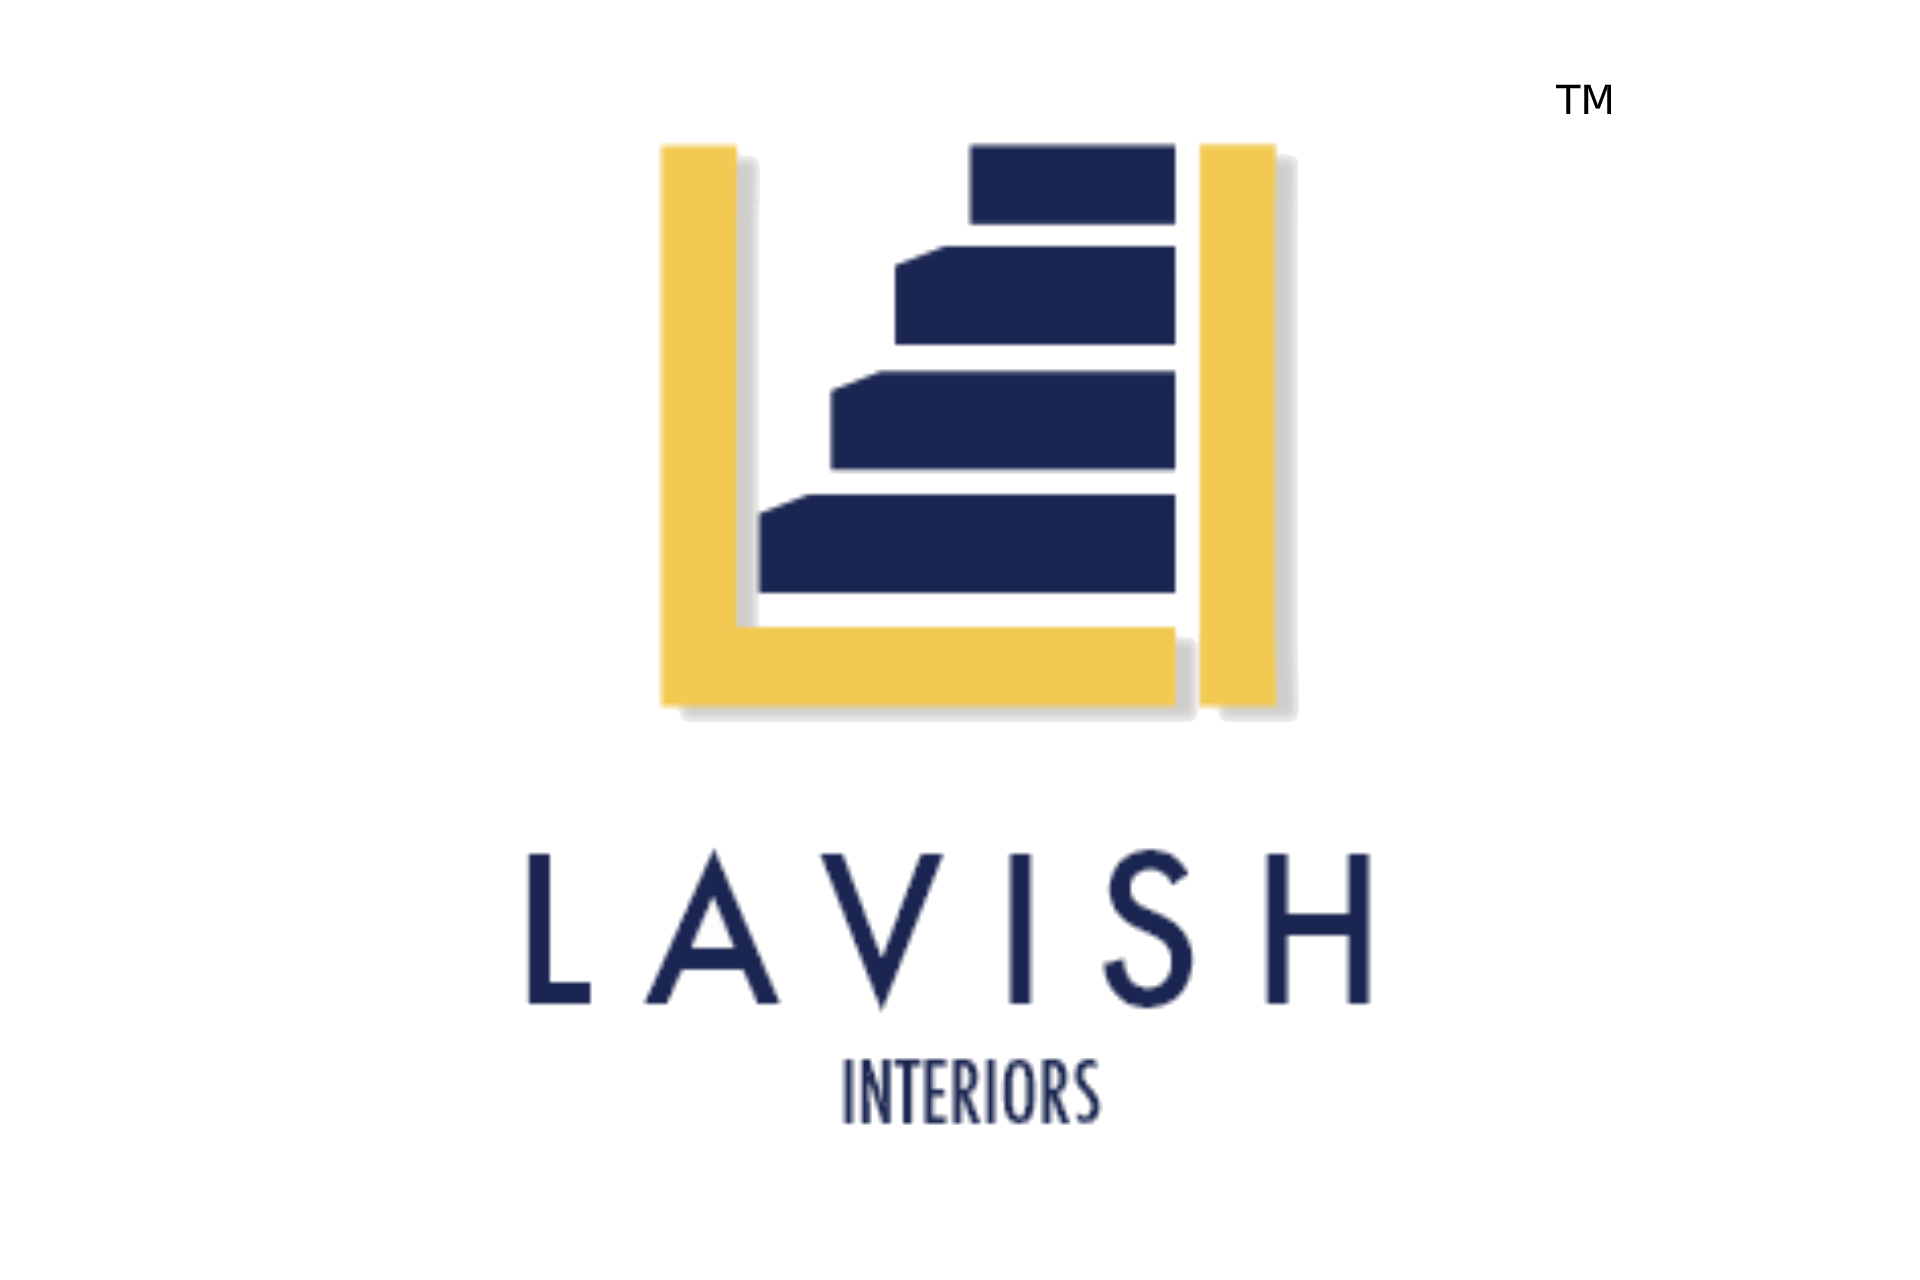 Lavish Interiors